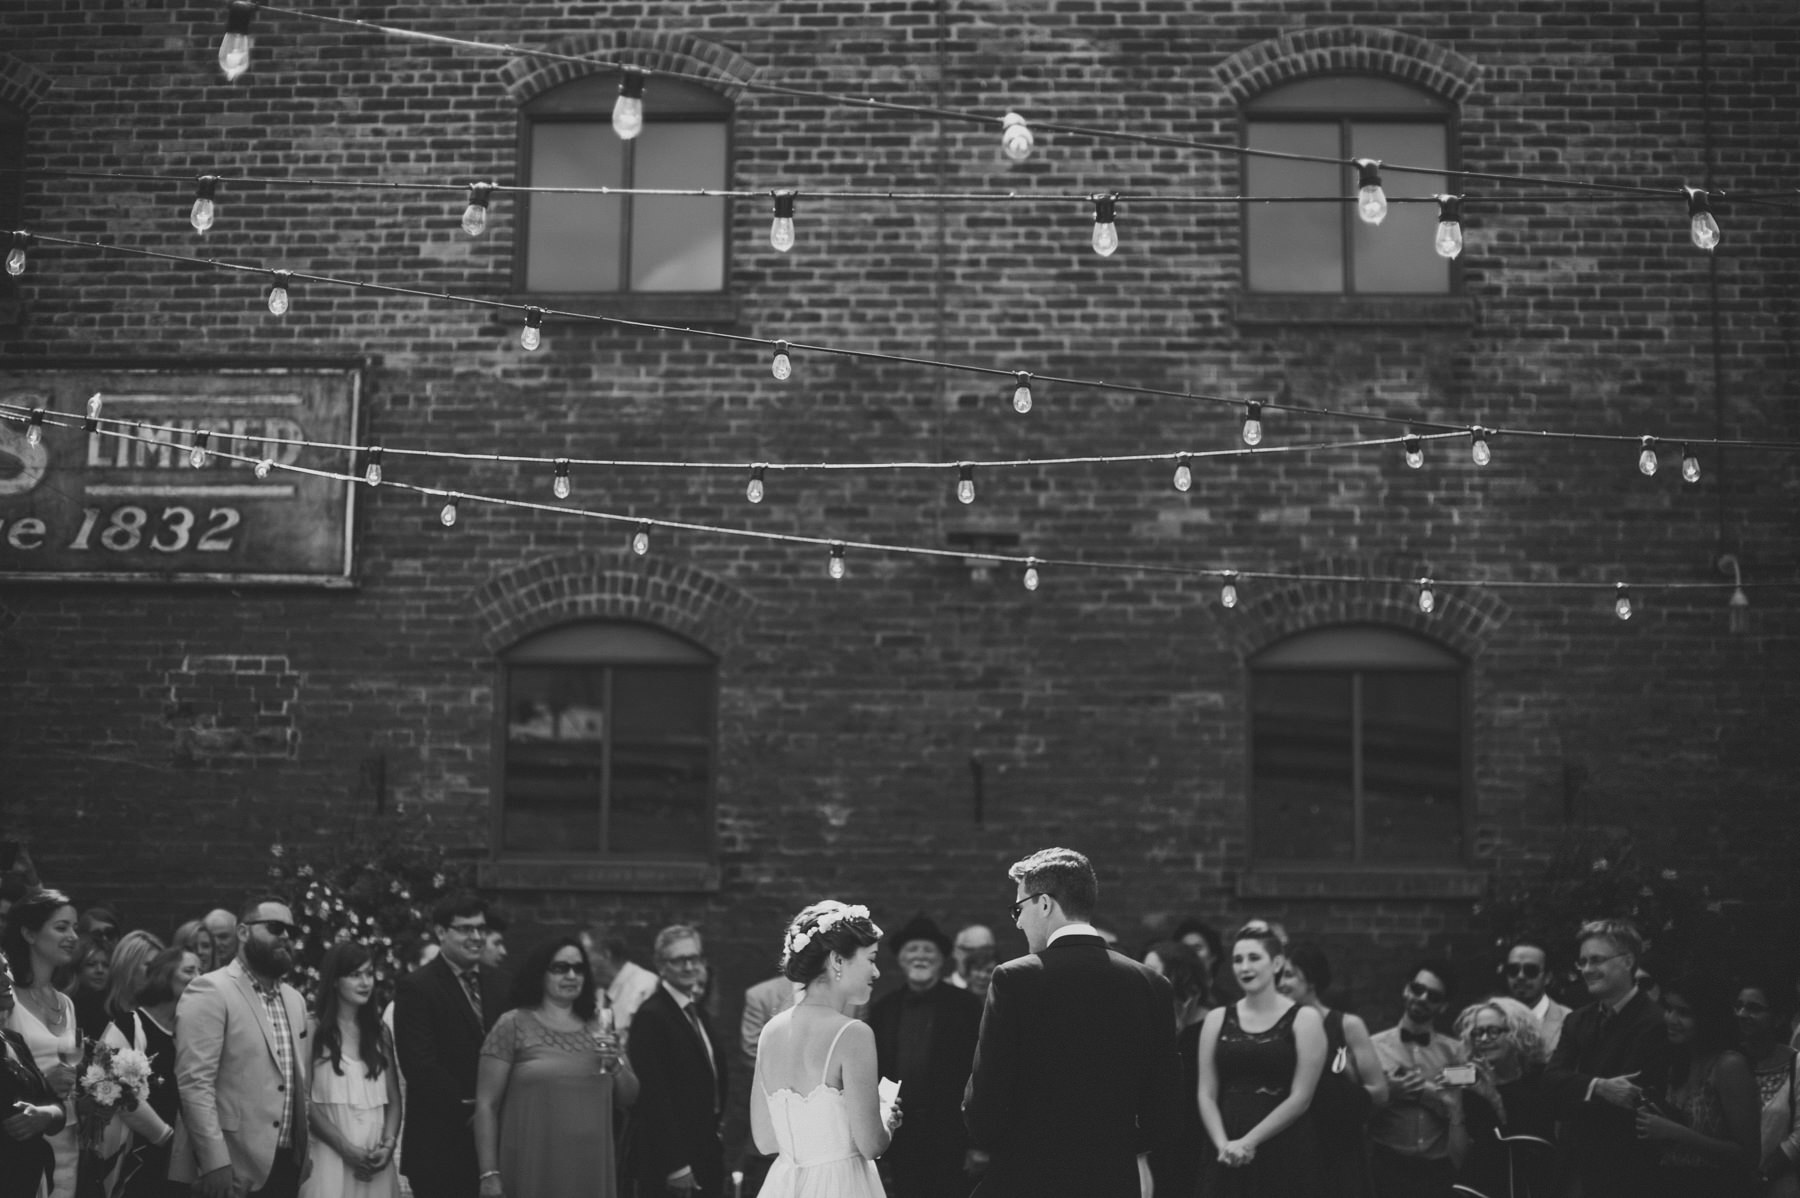 Daring Wanderer Photography - Daring Wanderer - Toronto wedding photographer - Archeo Wedding - Distillery District wedding - Archeo Distillery District - Rustic wedding venue - red brick wall - enoch turner school house wedding - toronto wedding ceremony location - toronto wedding locations - couples - love - together - canadian wedding photographer - ontario wedding photographer - intimate wedding